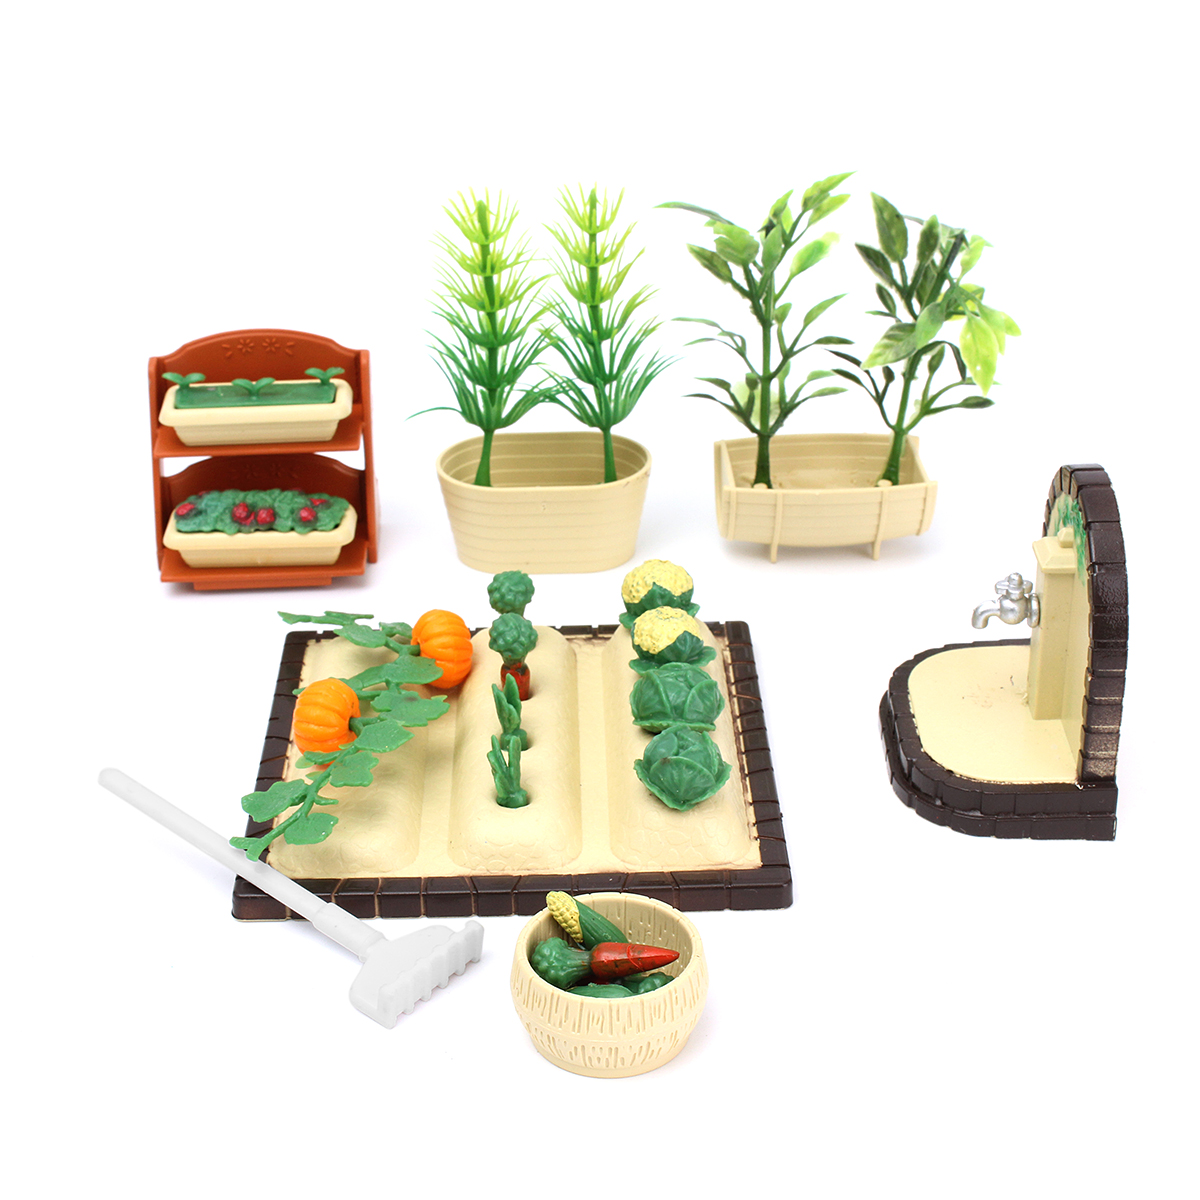 Miniature Gardening Vegetables DollHouse Furniture Outdoor Accessory Play Toys Spring Gardening Play Set Tools with Accessories For Sylvanian Families Dolls